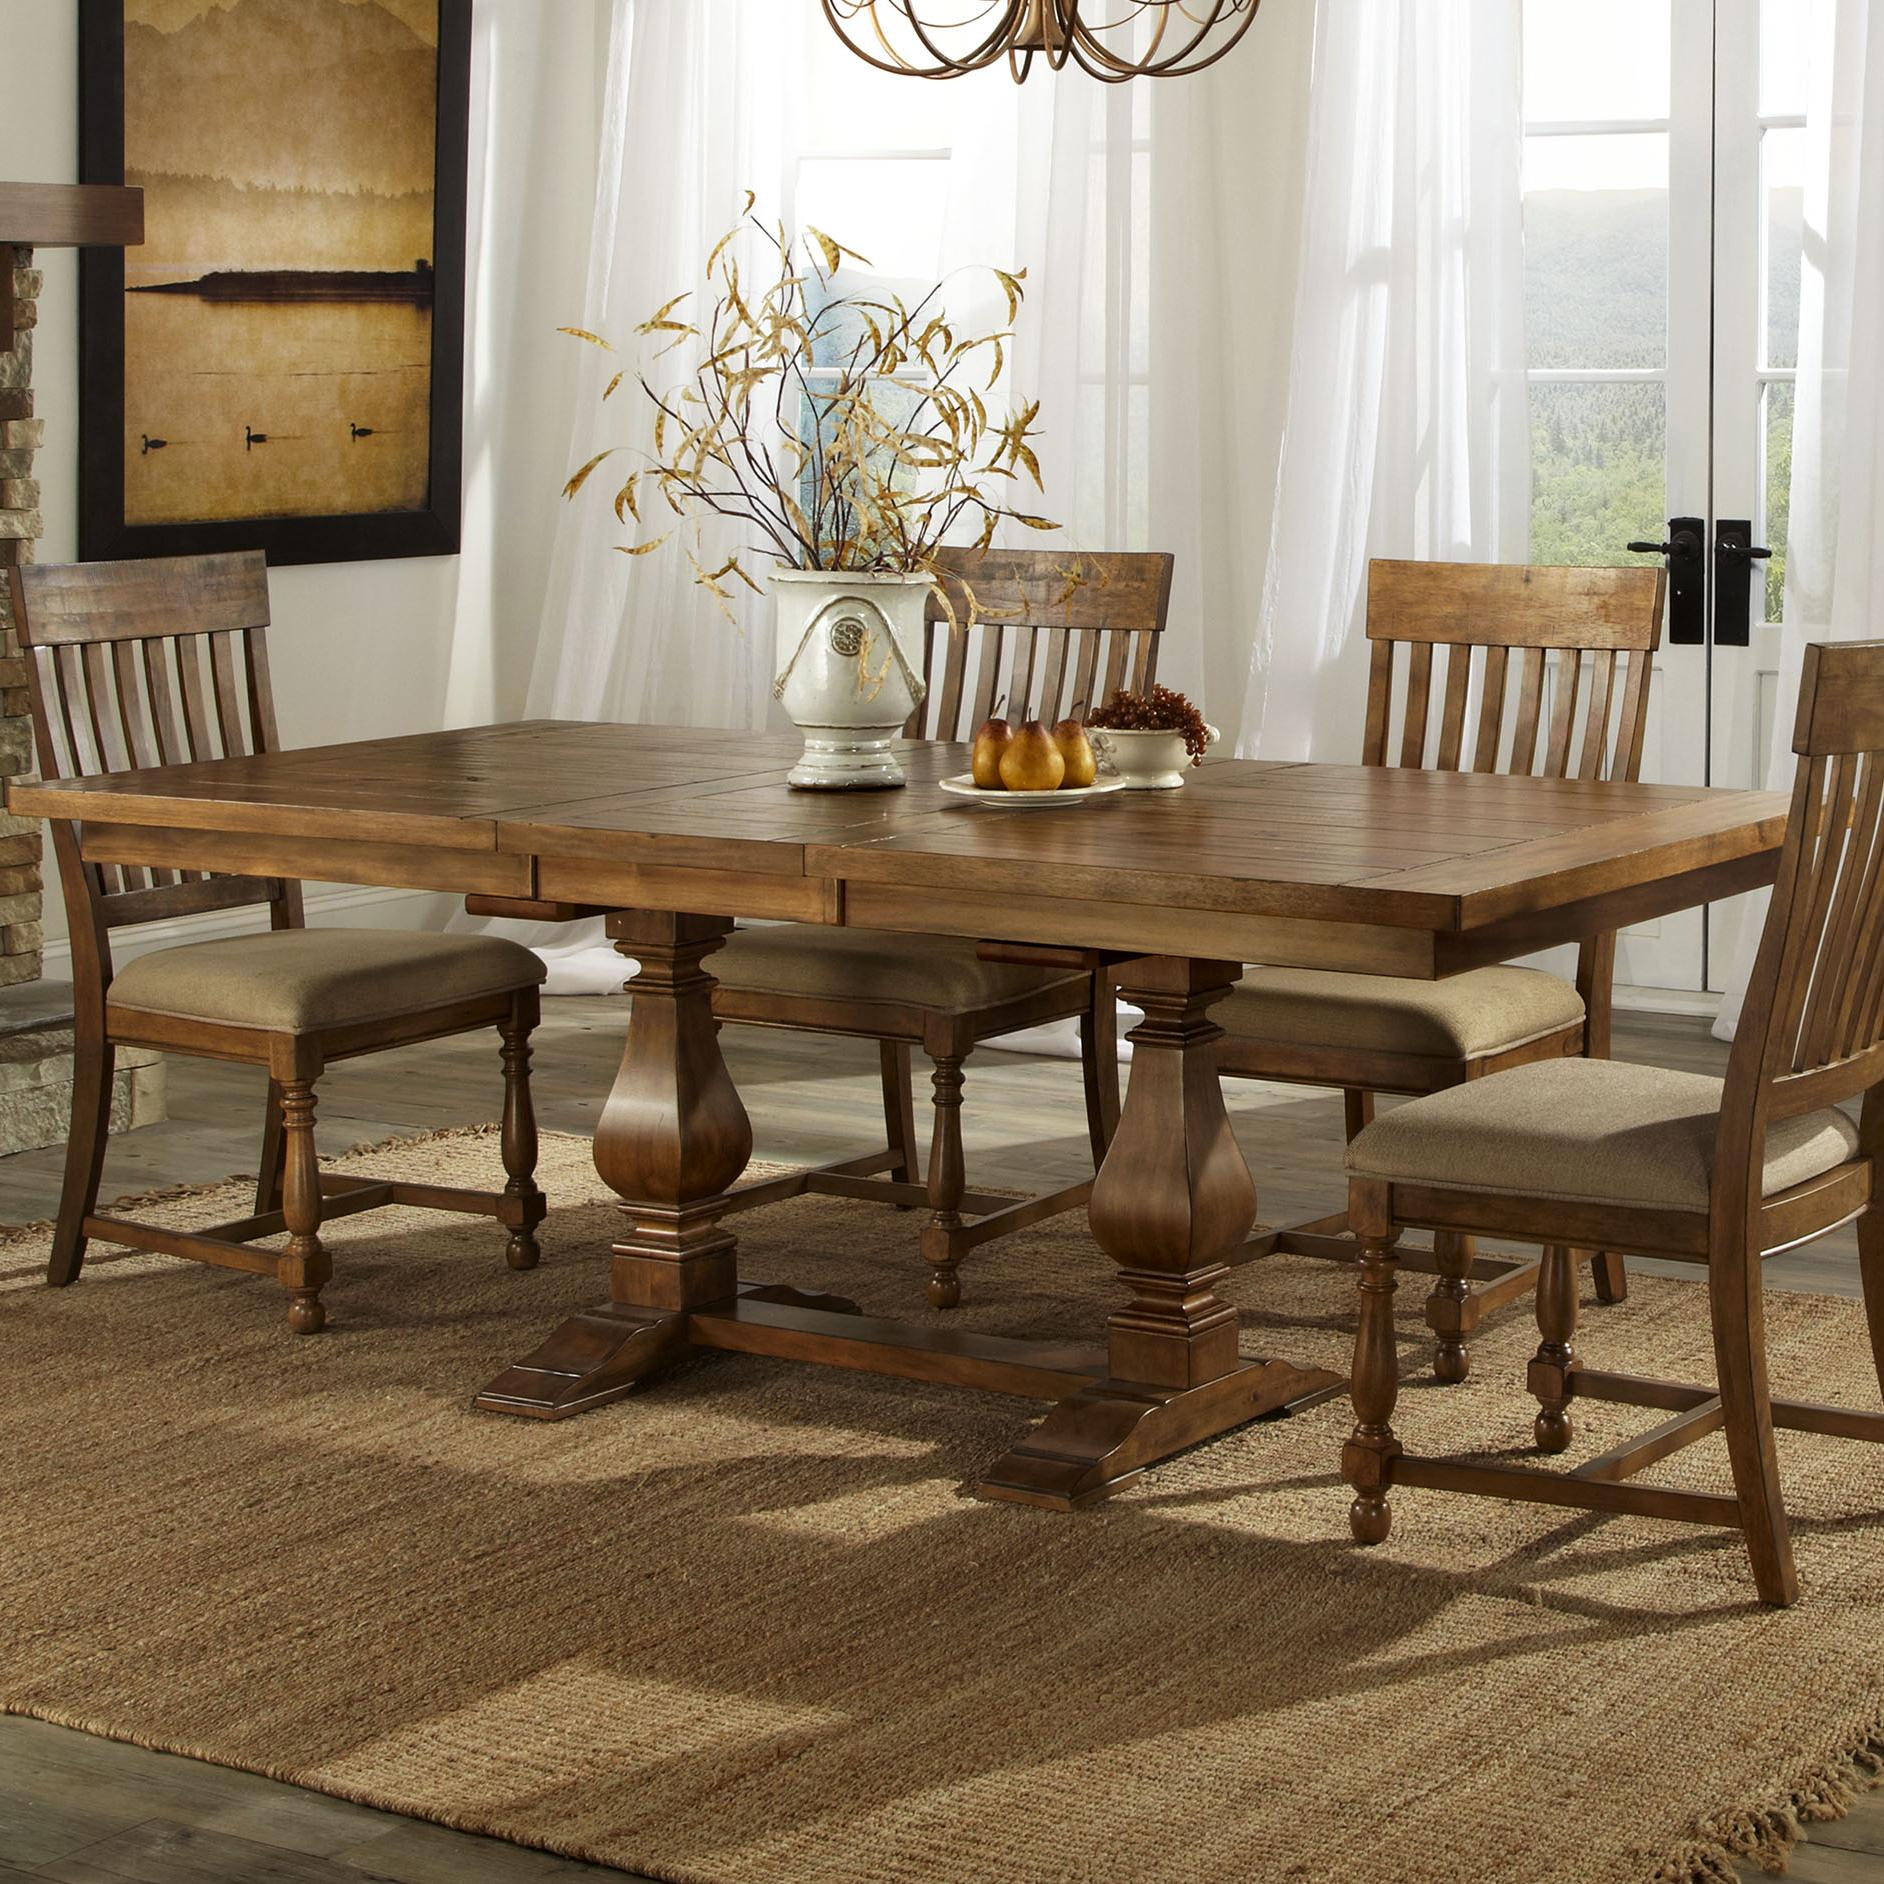 Belfort Select Loudoun Crossing Trestle Dining Table - Item Number: RH-TA-4084-BAL-BSE+R-T-4084-BAL-TOP